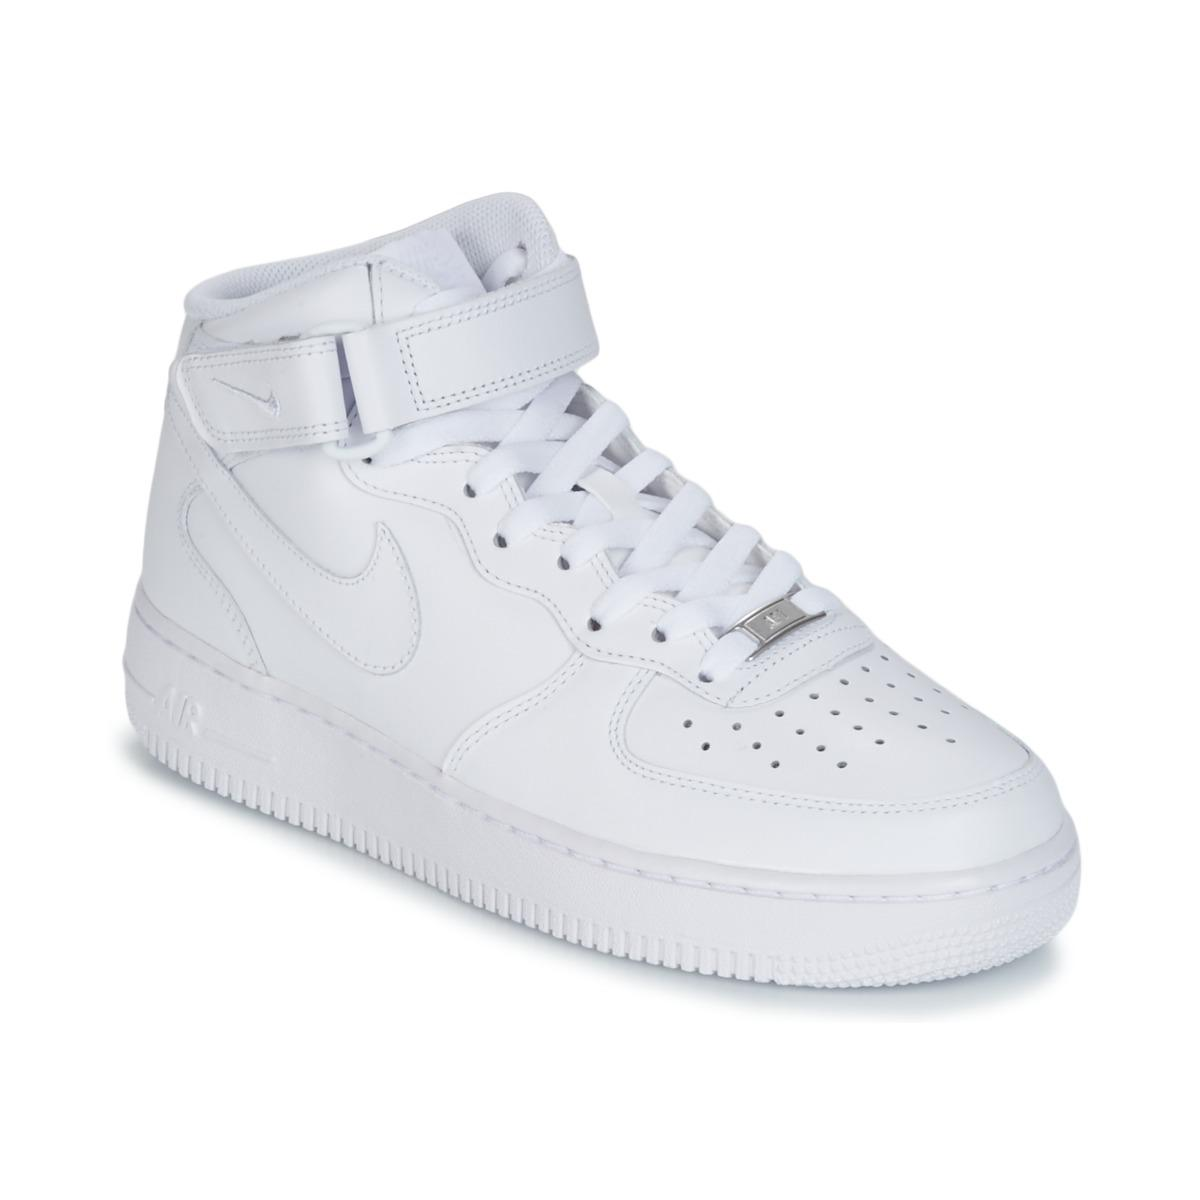 ff8ab019e Nike Air Force 1 Mid 07 Leather Shoes (high-top Trainers) in White ...